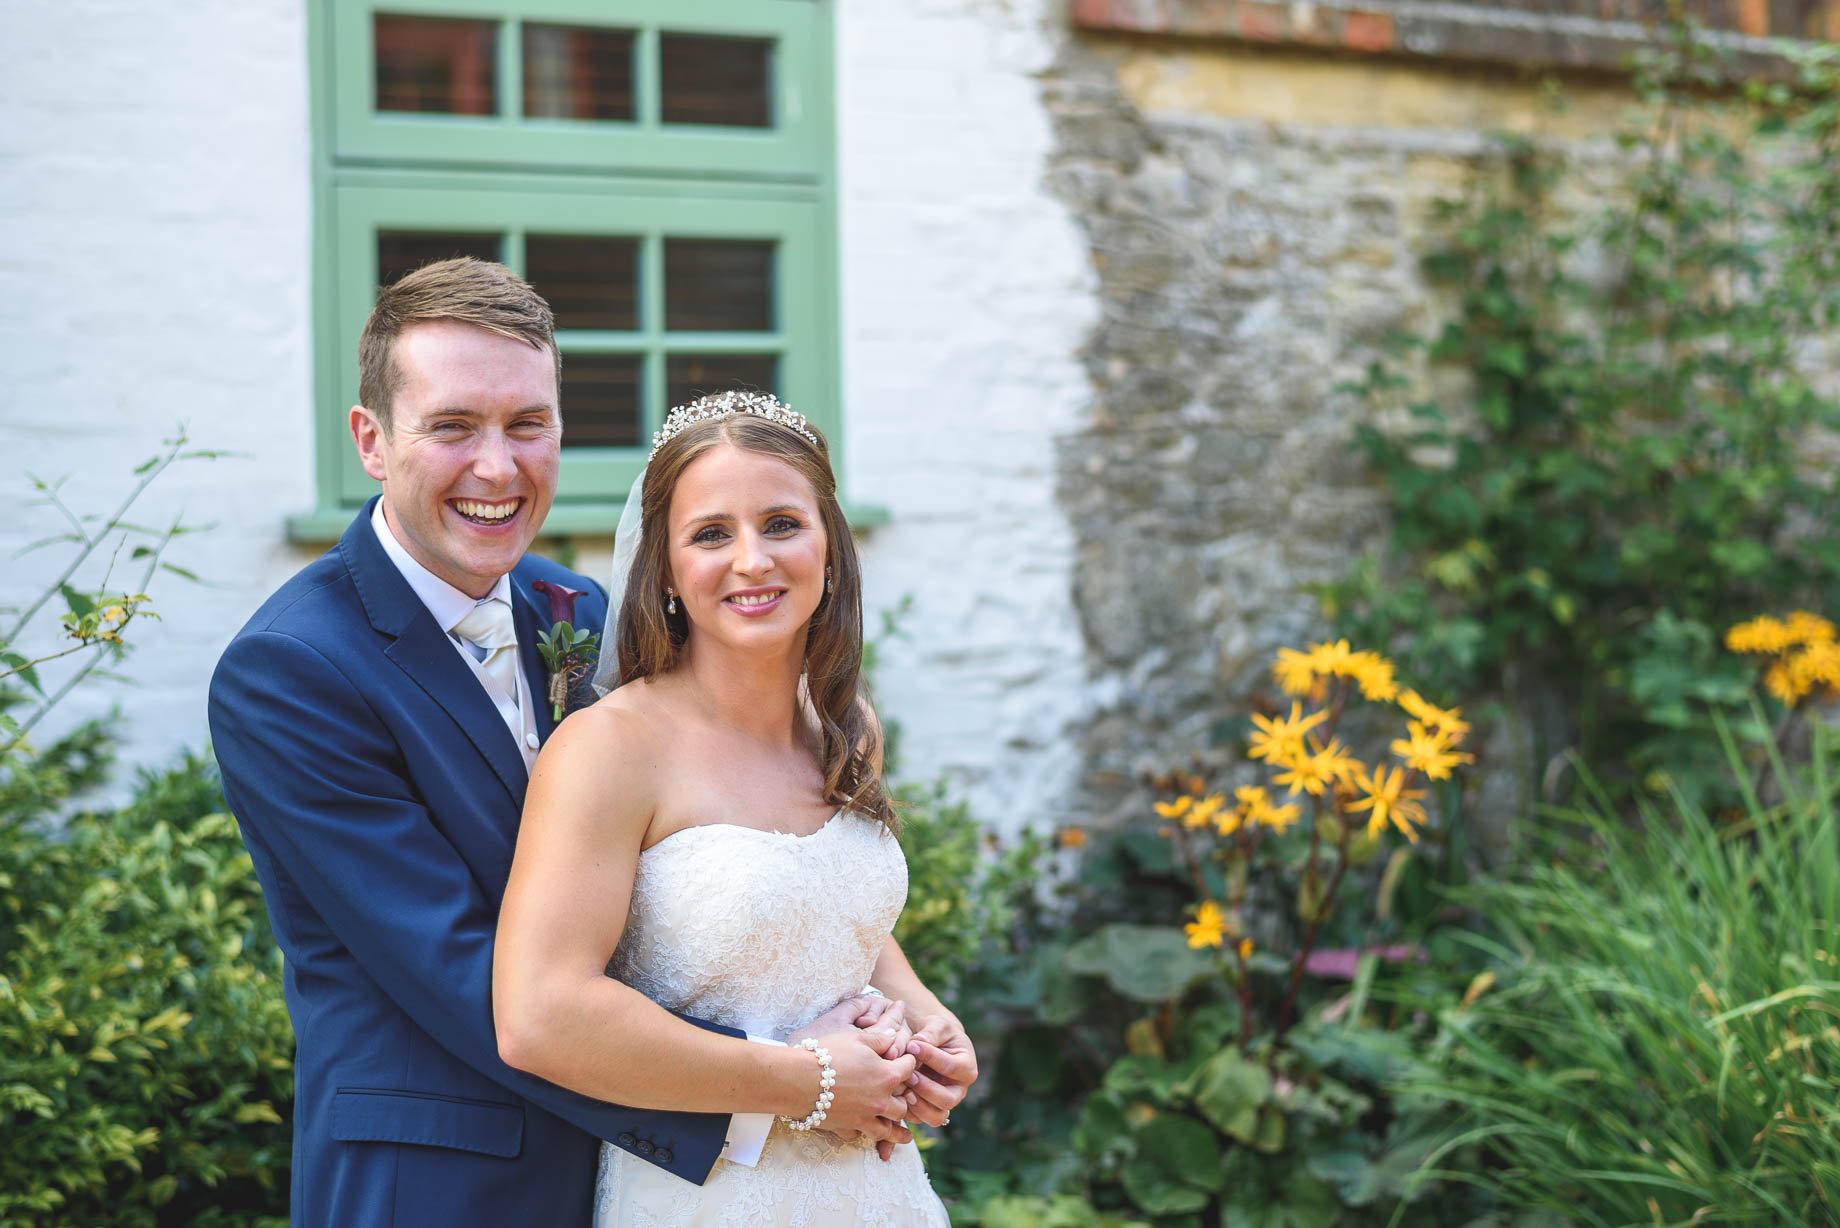 Gate Street Barn wedding photography - Guy Collier - Claire and Andy (67 of 192)